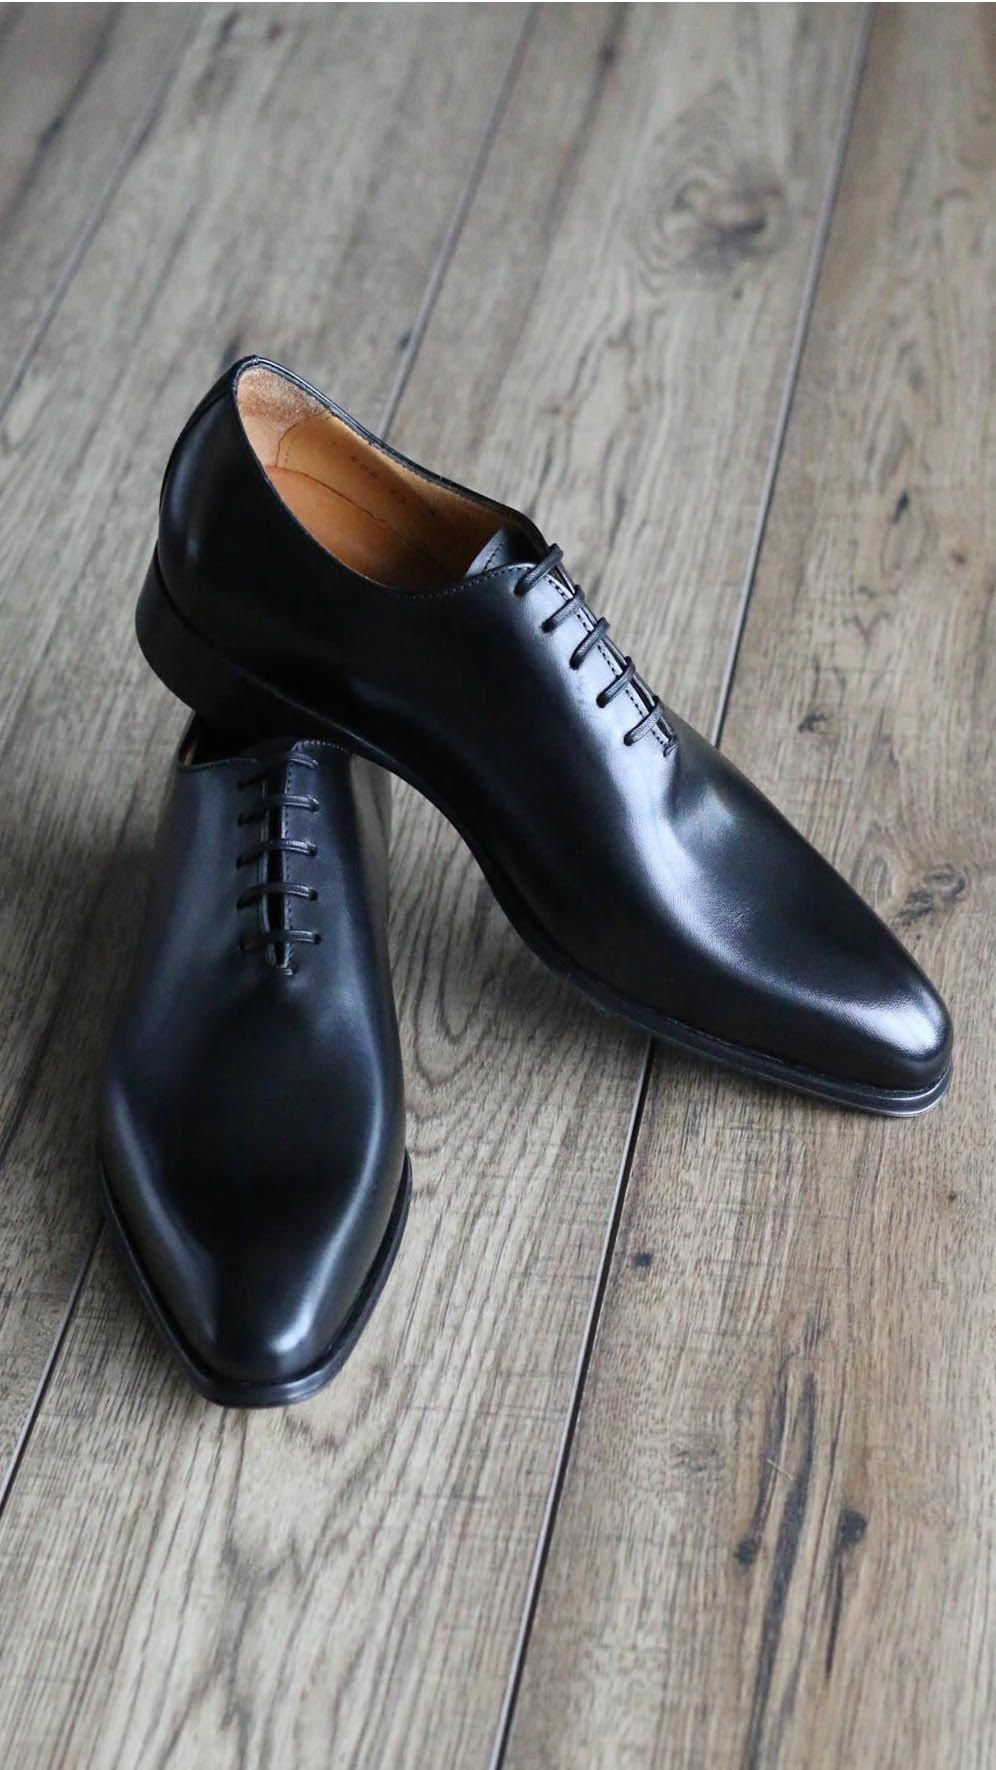 black bilberry brogue wholecut shoe